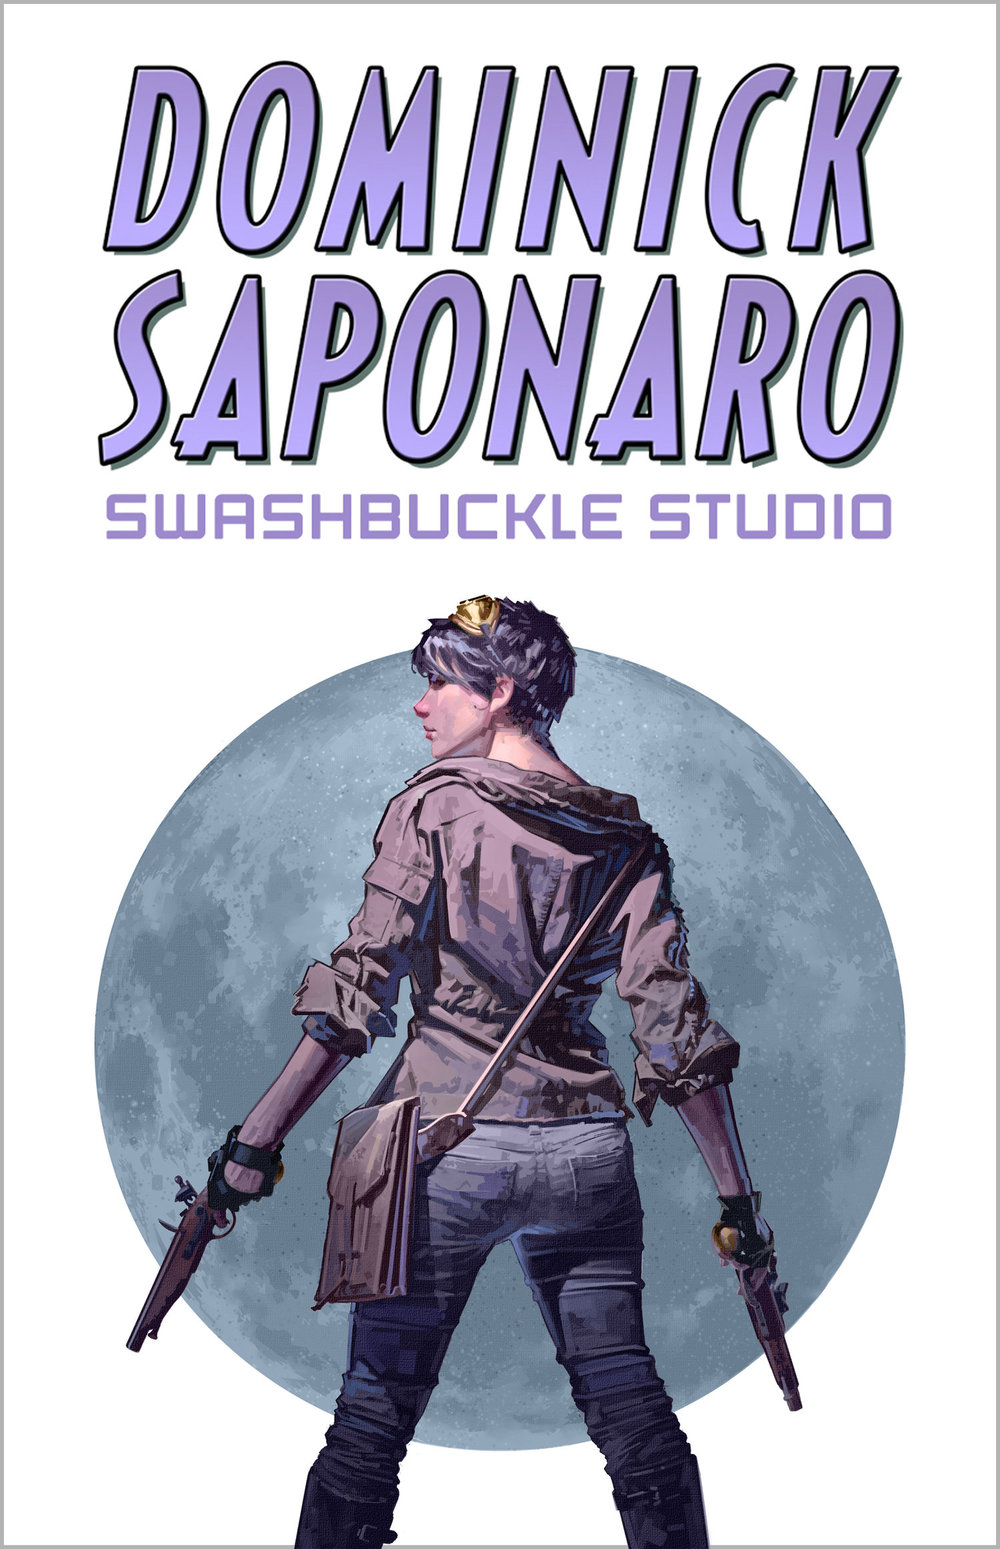 Dominick+Saponaro+-+Swashbuckle+Studio+New+Launch+Graphic+.jpg